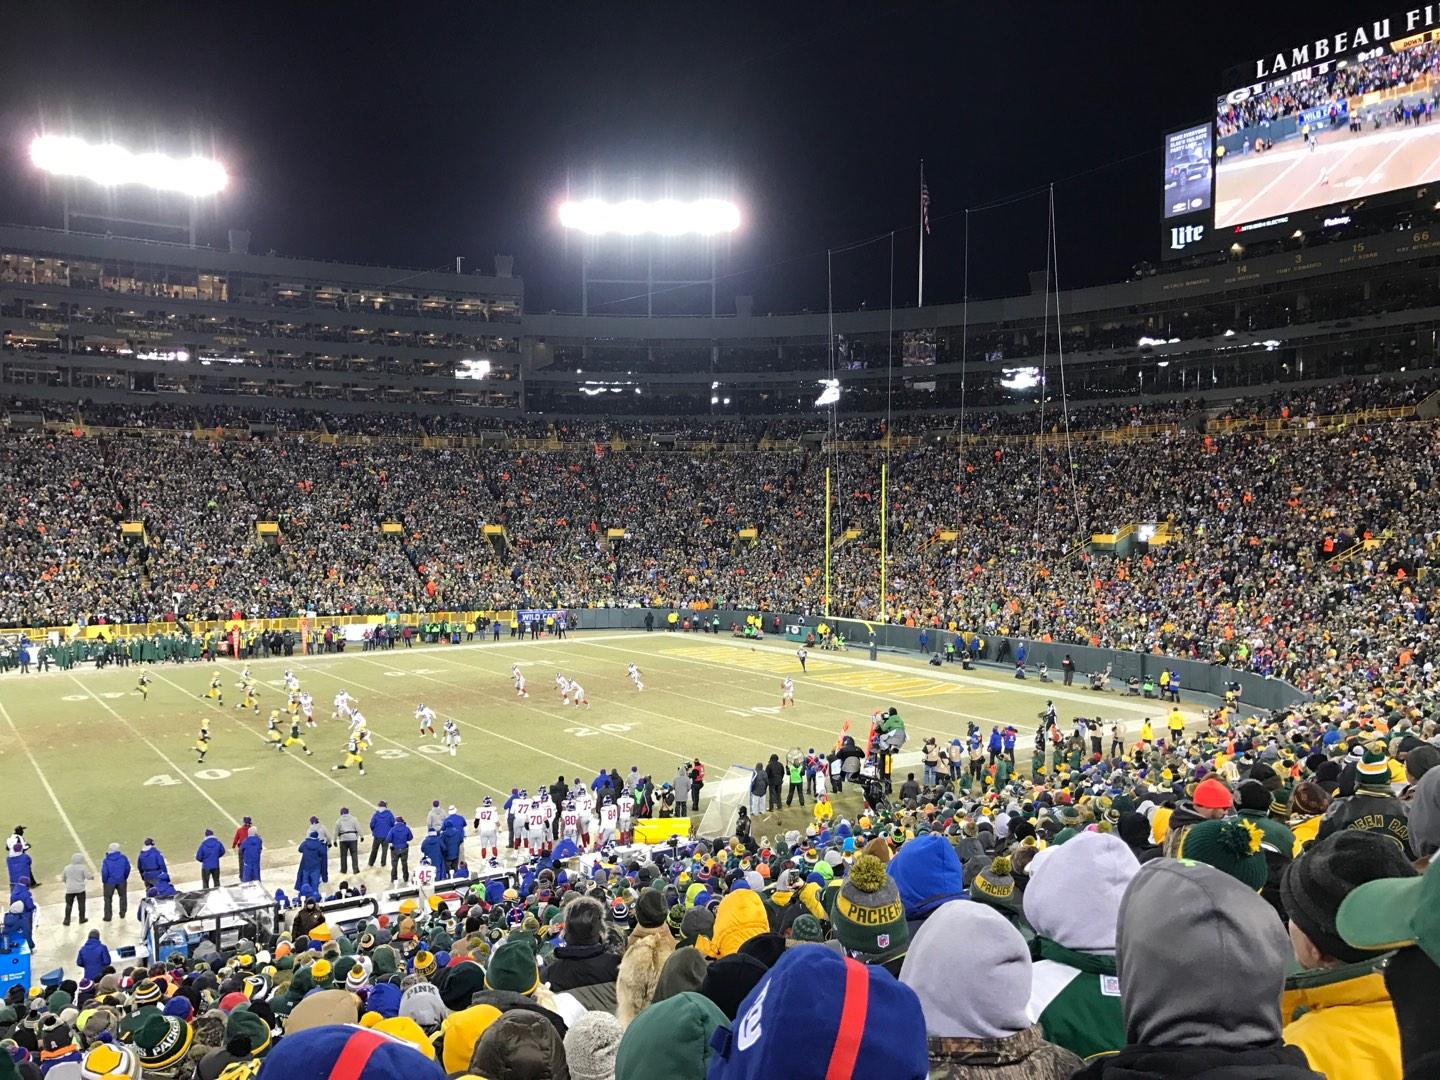 Lambeau Field Section 129 Row 32 Seat 10